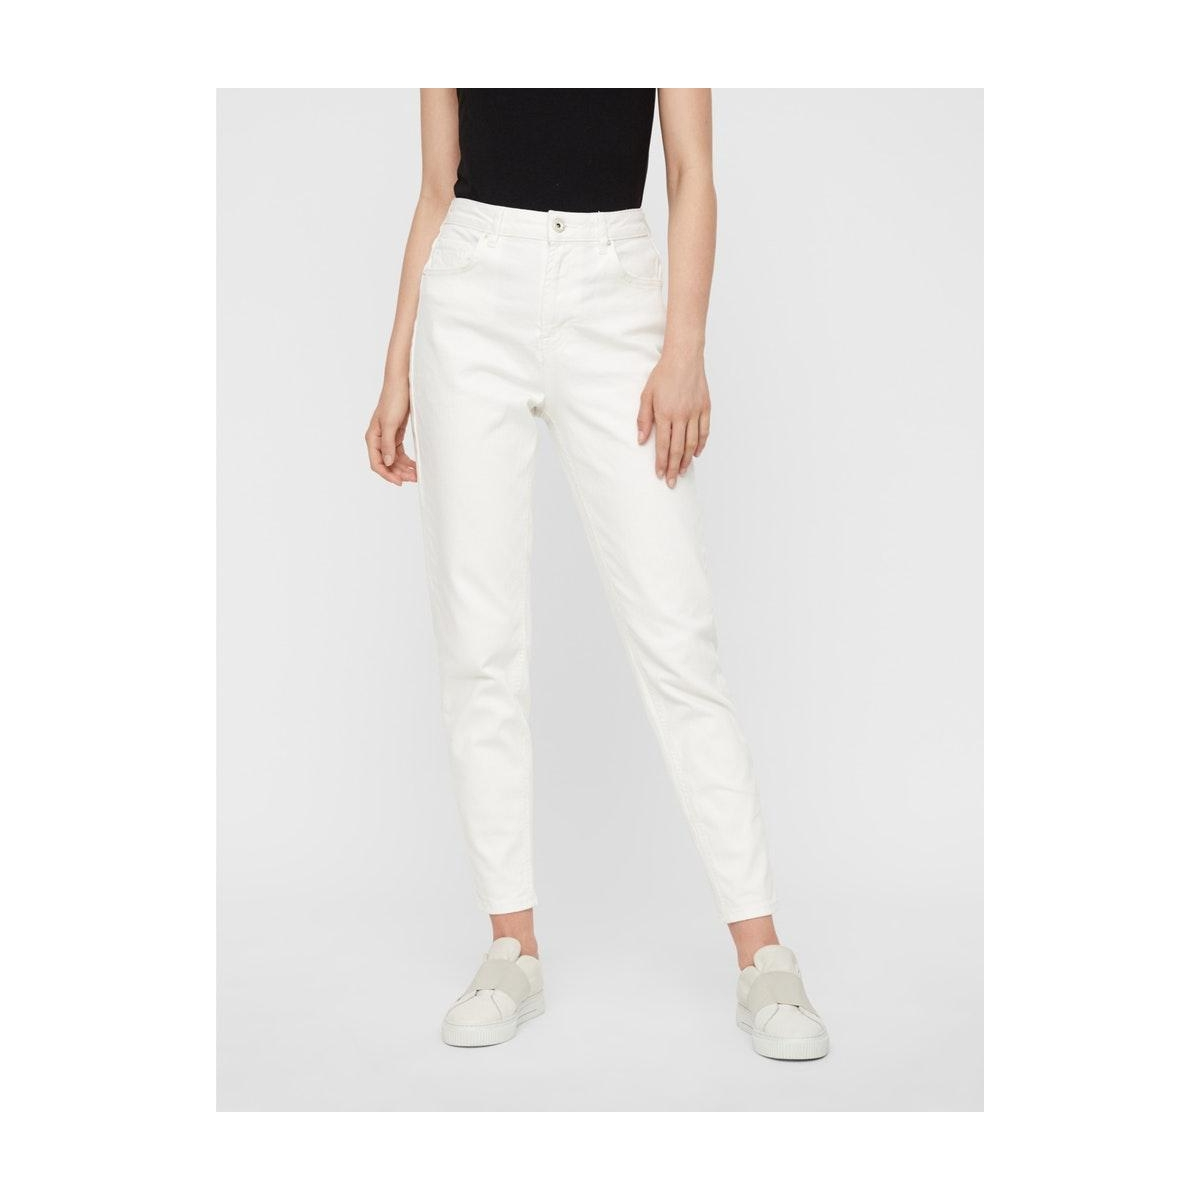 pcleah mom hw ank white-ba/cp 17102065 pieces jeans bright white